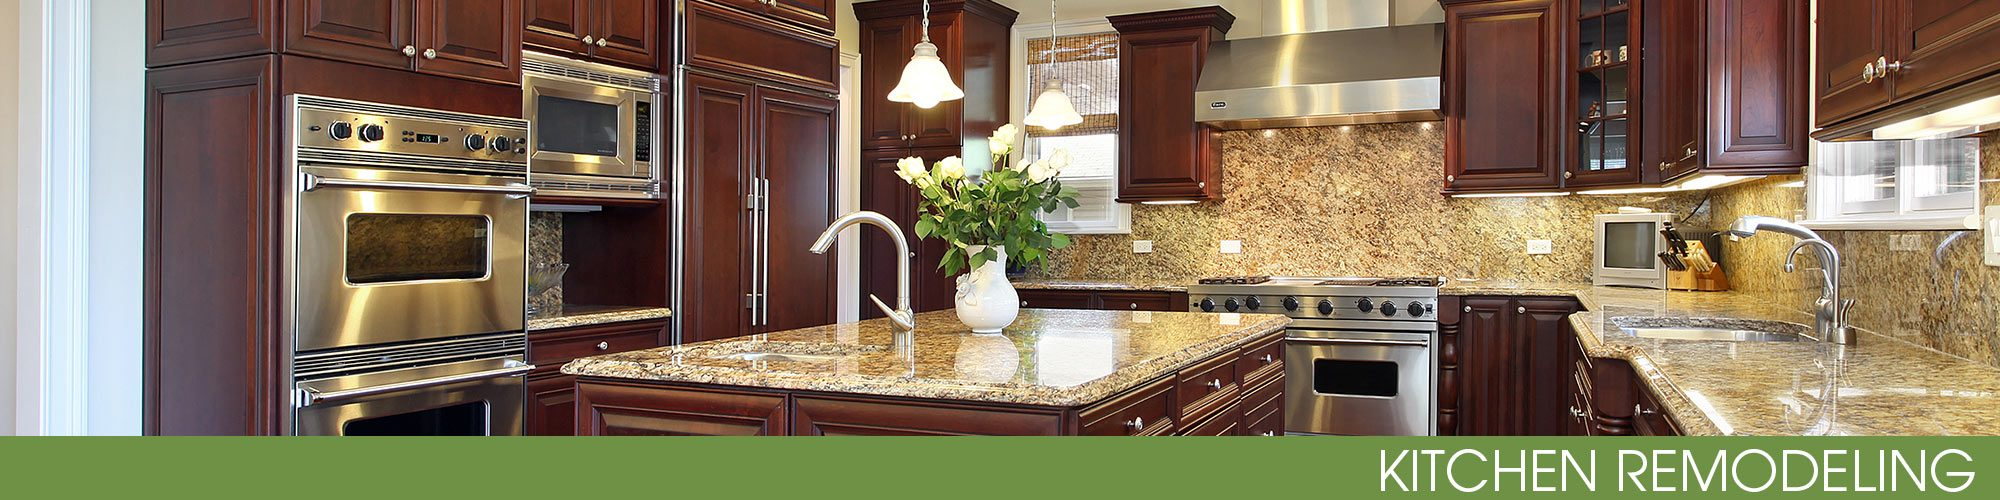 belleville kitchen remodeling